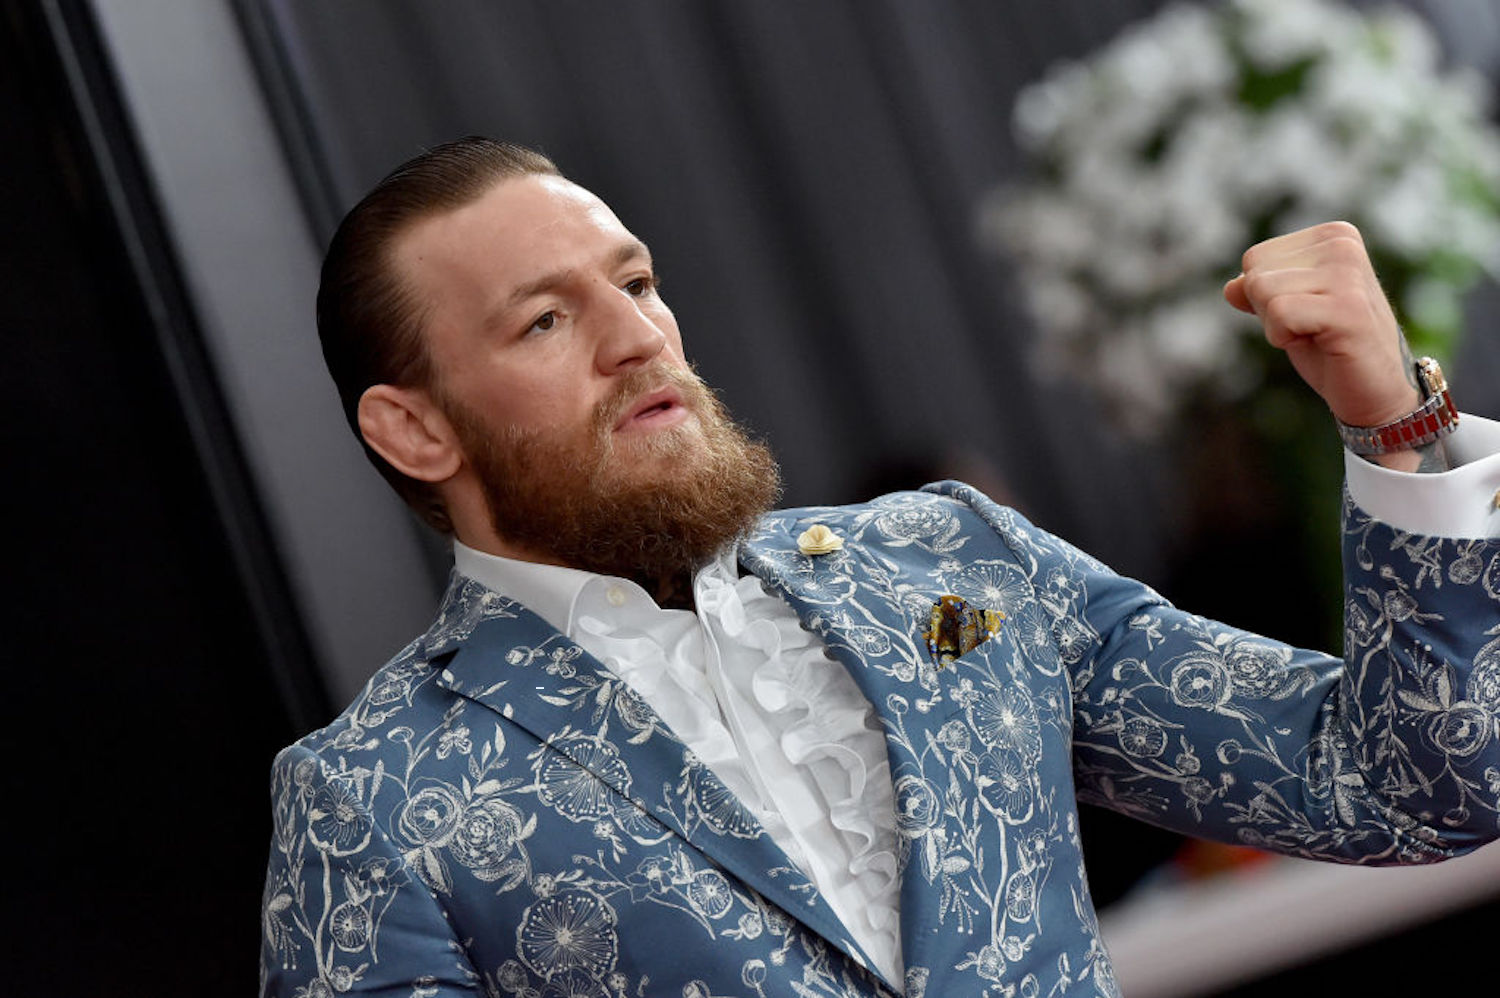 Conor McGregor already has his future plans mapped out after UFC 257, and it sounds like it includes a rubber match against Nate Diaz.